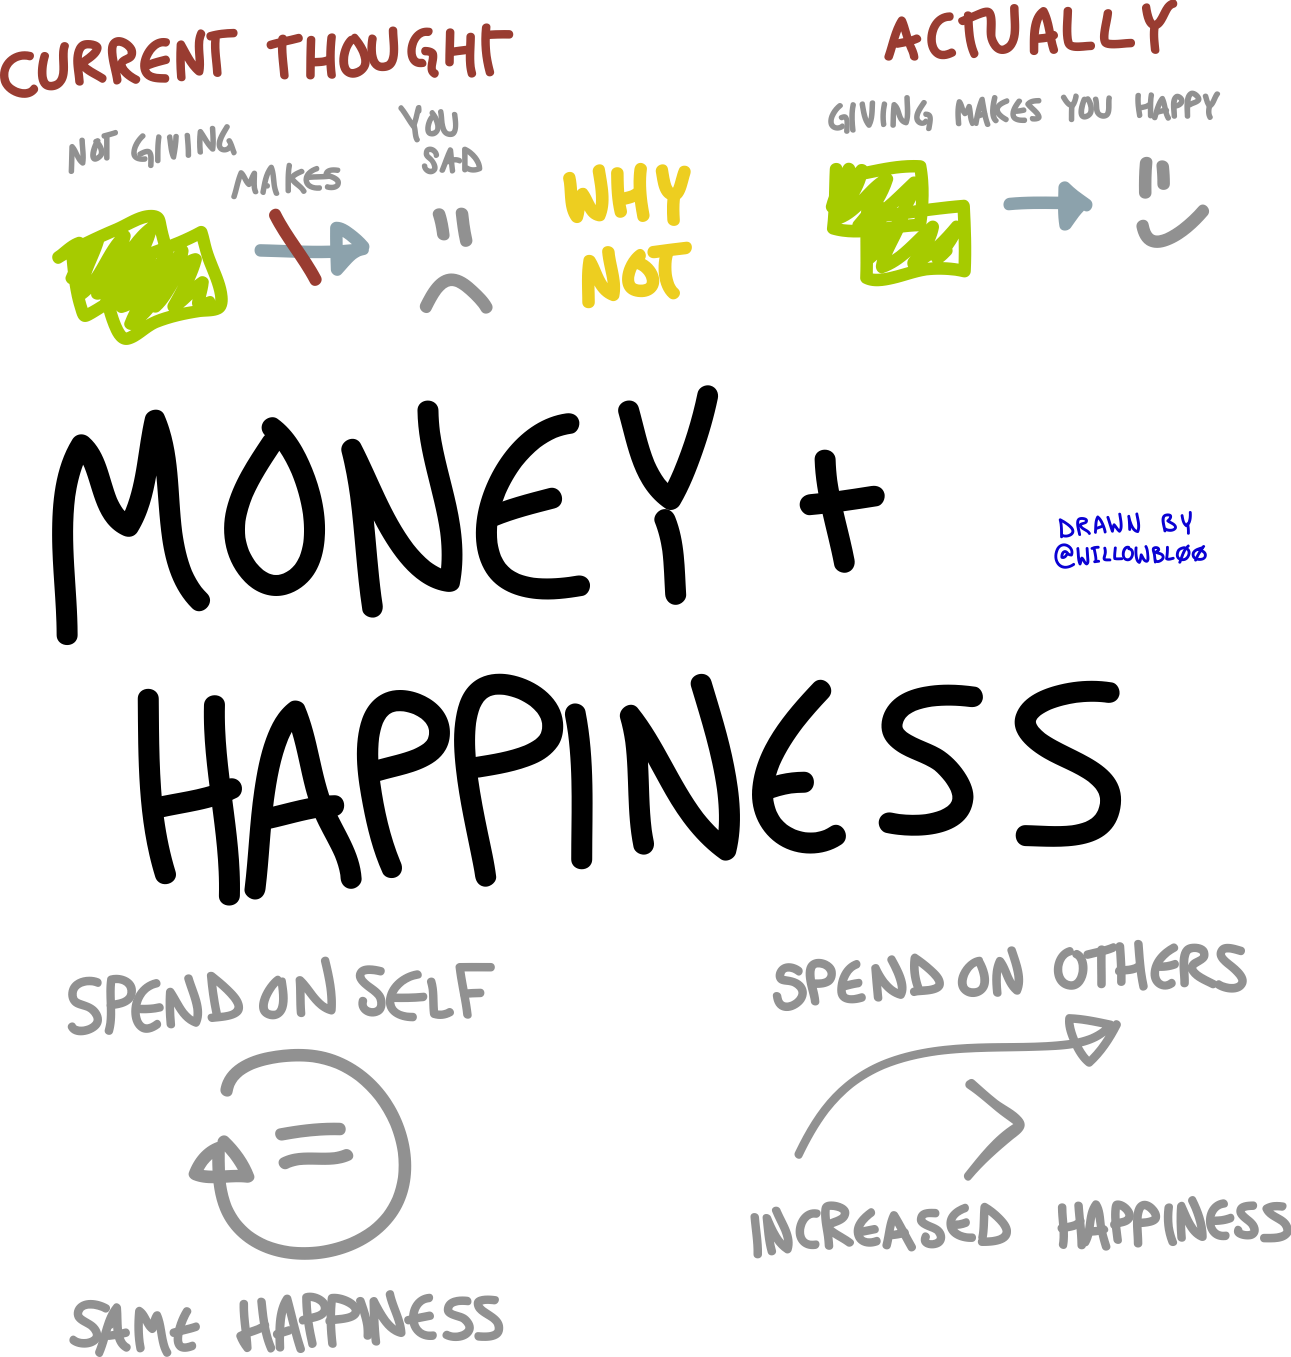 sociological perspective of money can t buy happiness Money can't buy happiness extremely wealthy people have their own set of concerns: anxiety about their children, uncertainty over their relationships and fears of isolation, finds research by robert kenny.